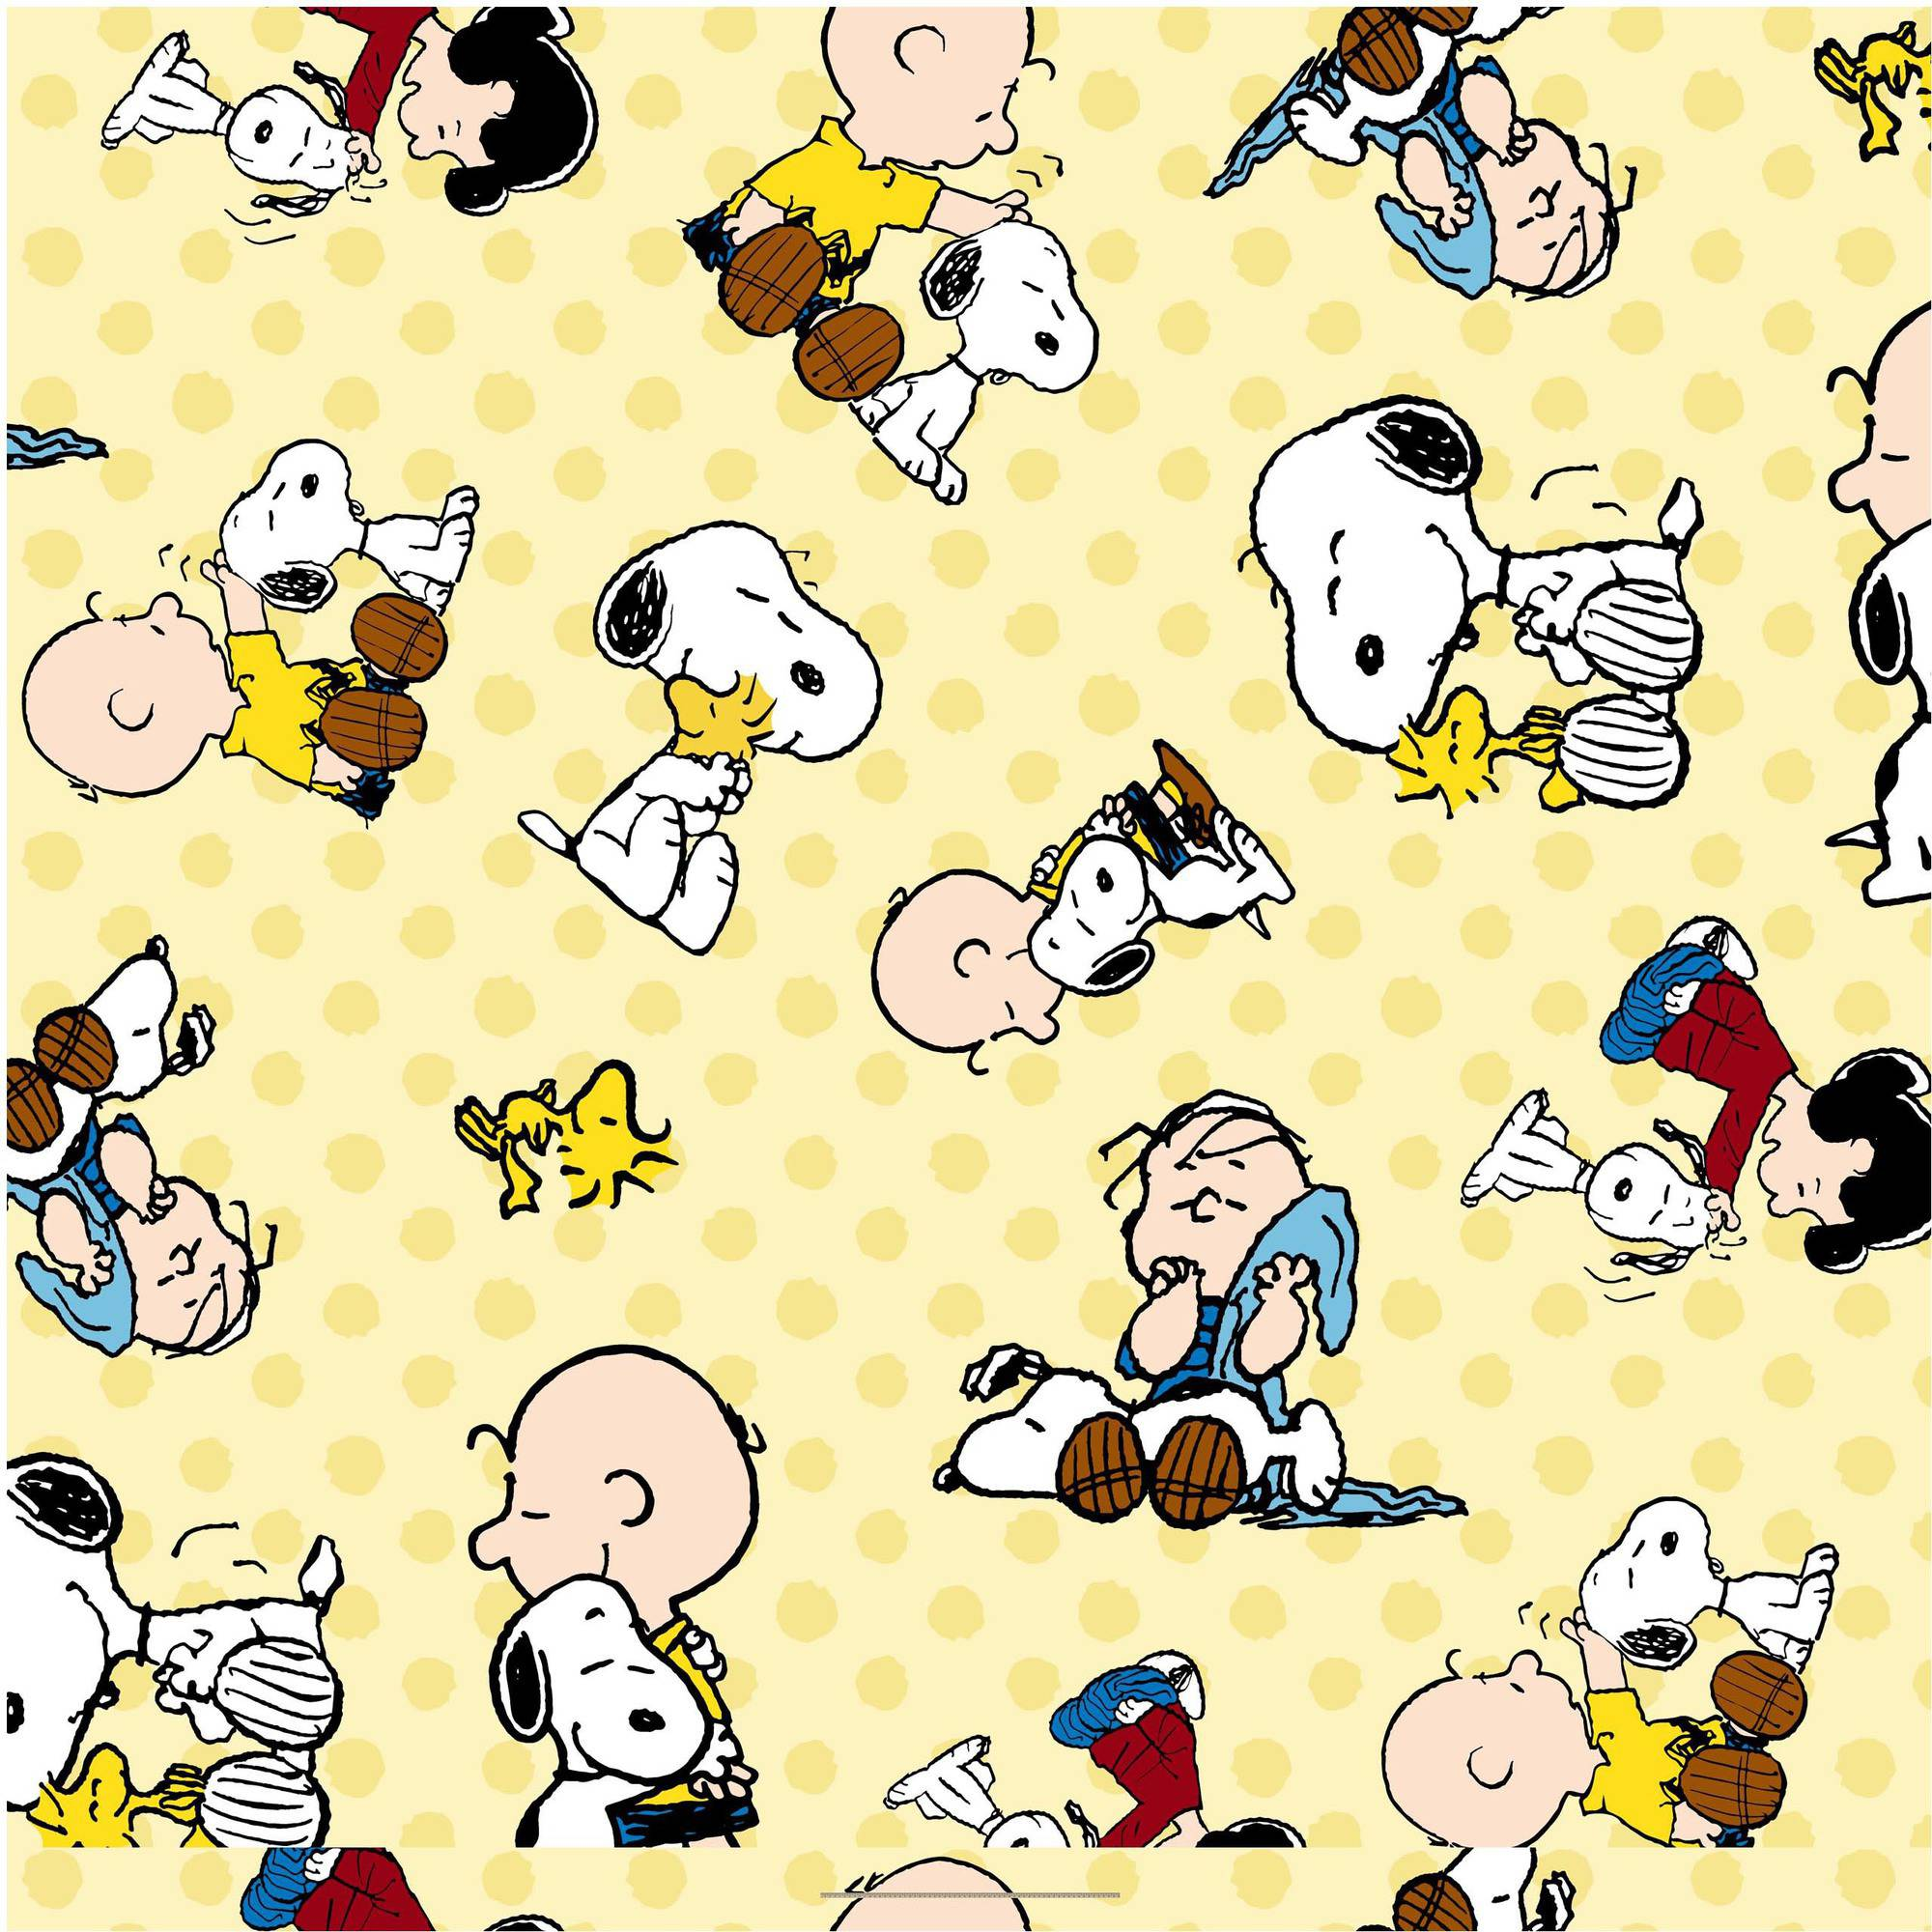 Snoopy Wallpaper Iphone 6 Snoopy And Friends Www Pixshark Com Images Galleries